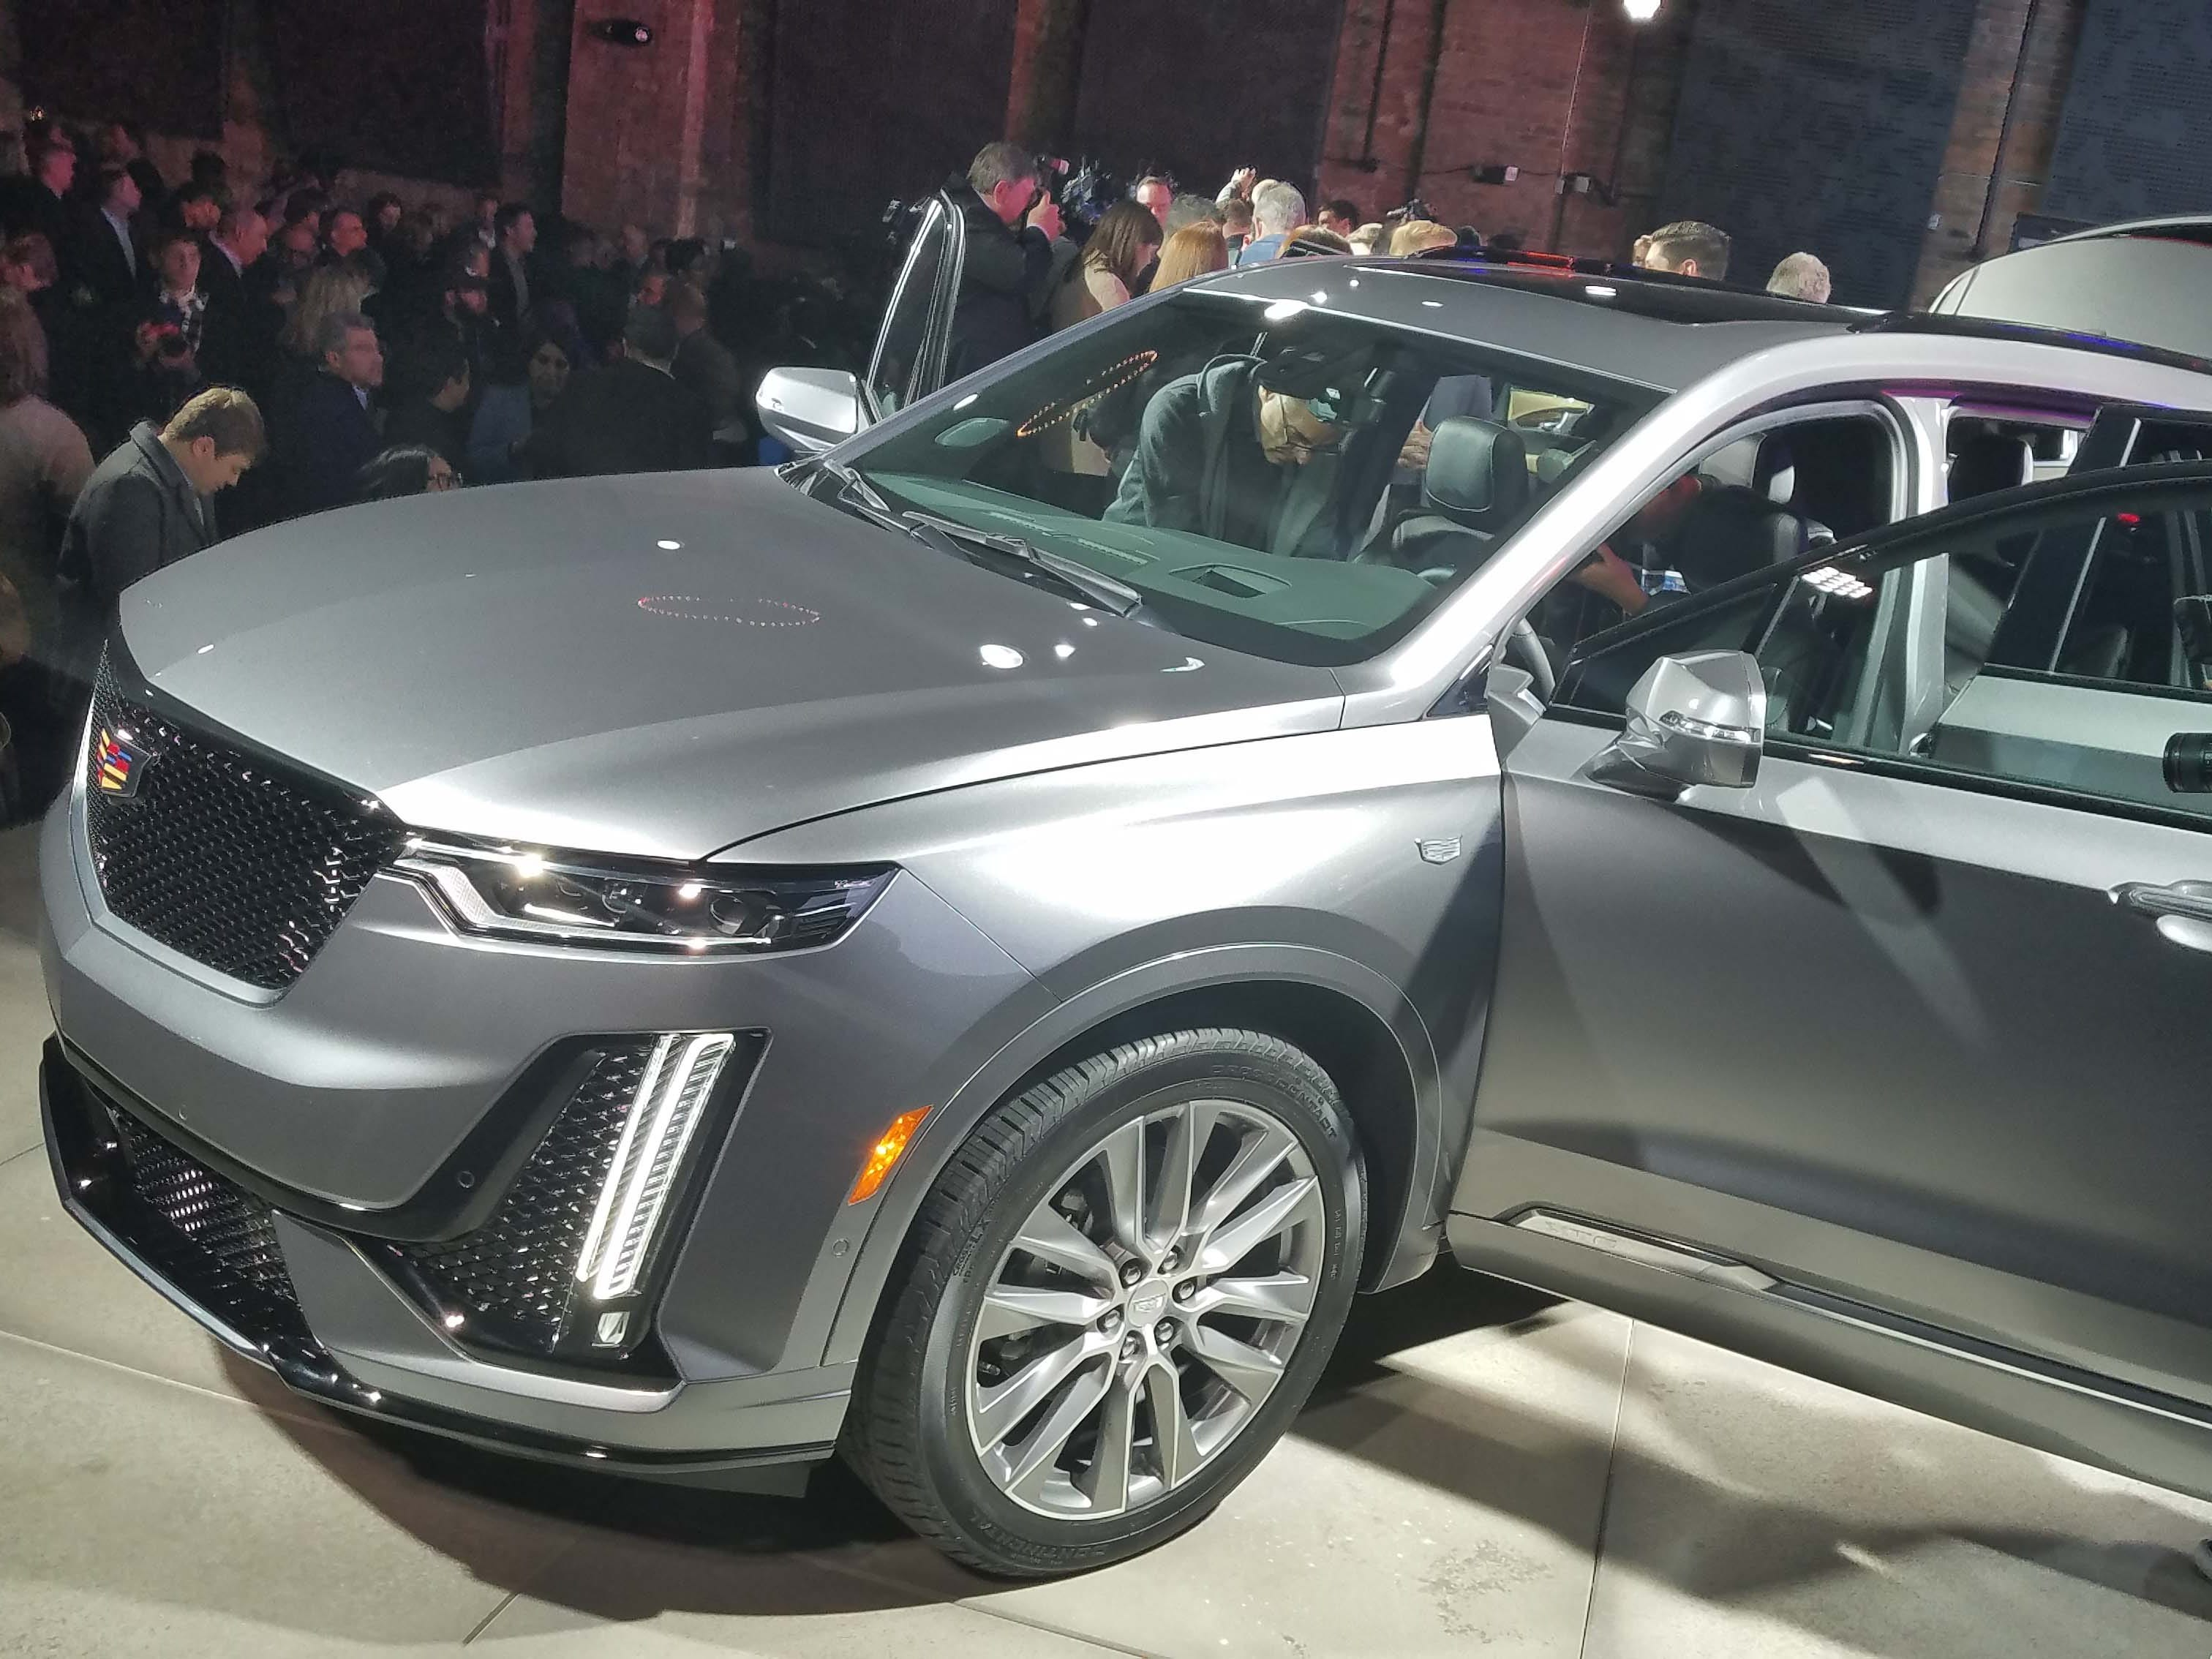 Media mob the Cadillac XT6 at the Detroit Auto Show. The three-row XT6 is the fourth Cadillac SUV entry following the XT4, XT5 and Escalade. The brand has been playing catch-up in the luxury SUV market.